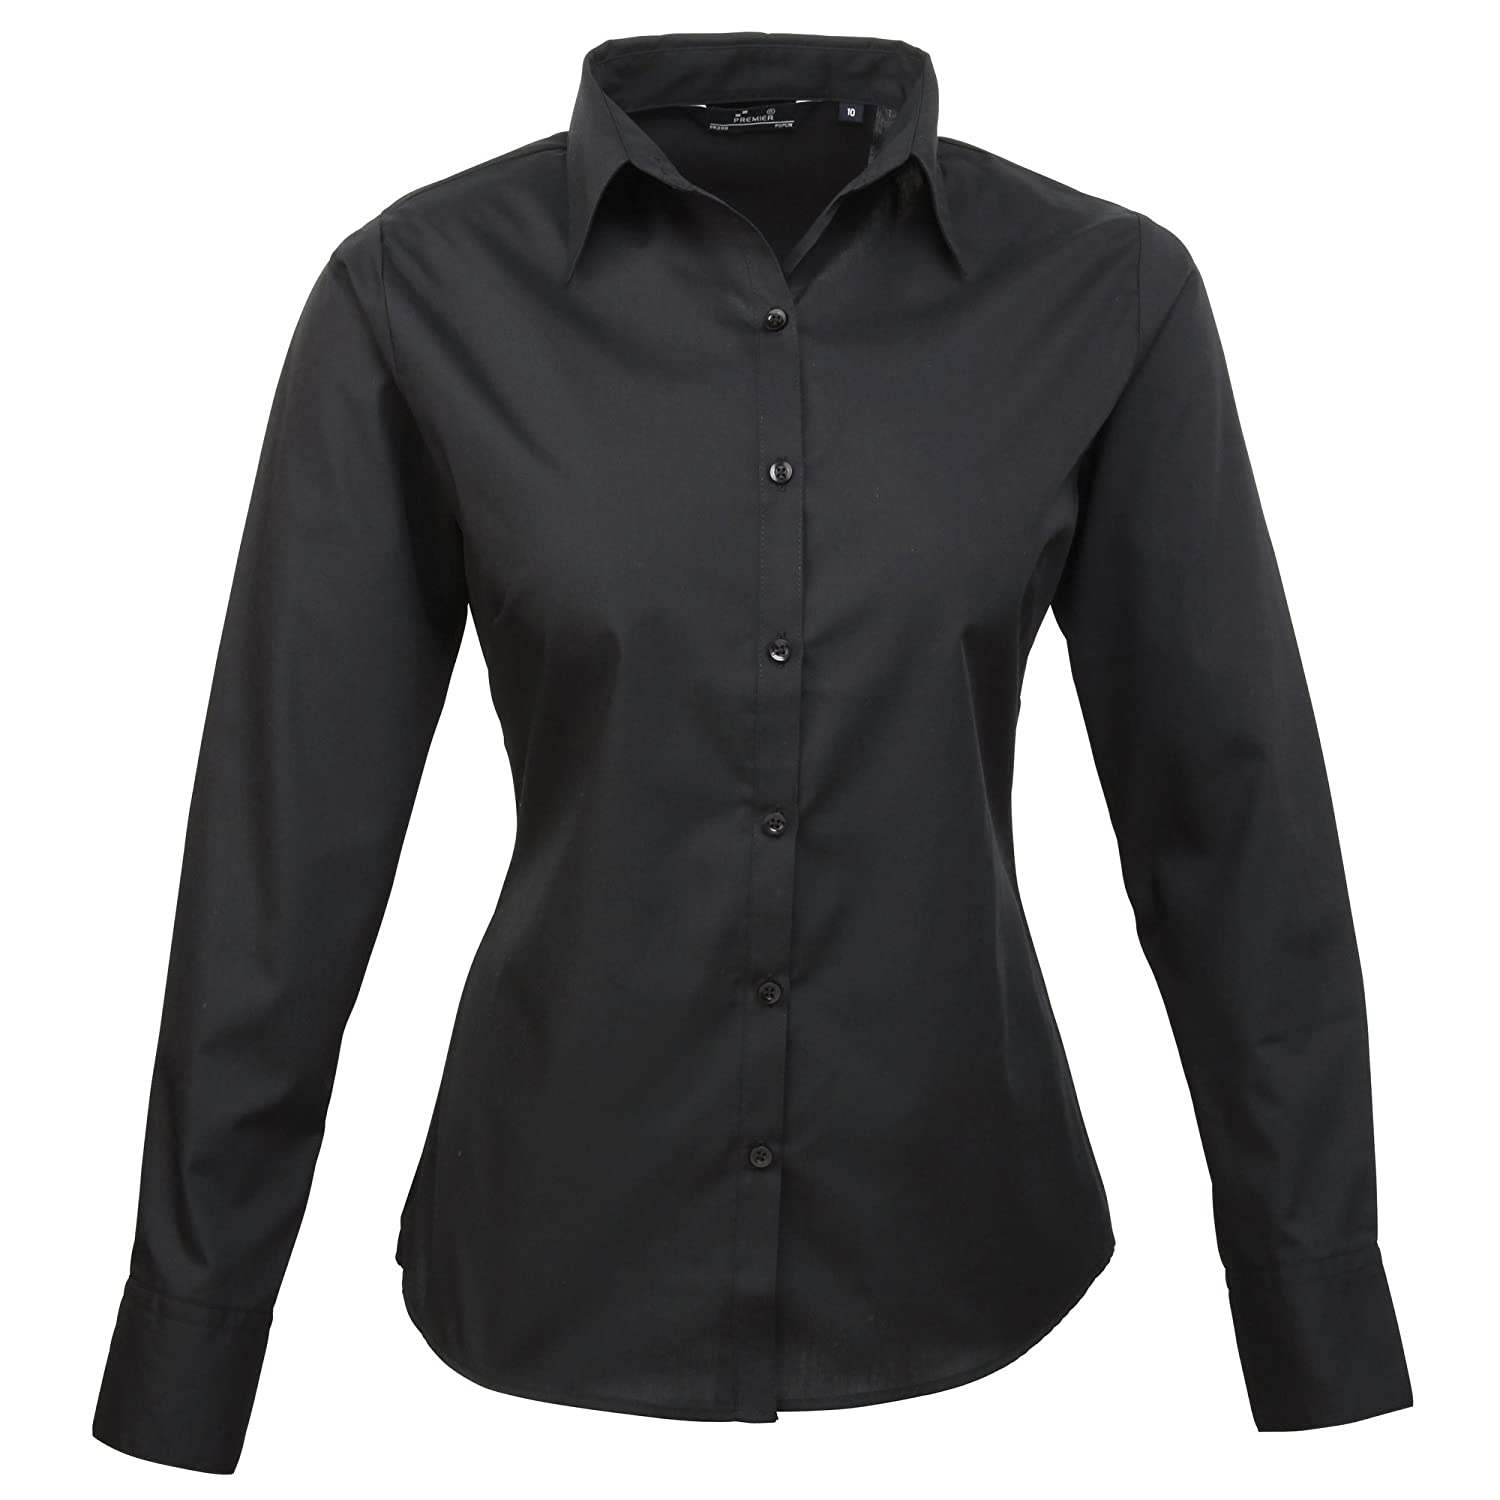 Premier Womens/Ladies Poplin Long Sleeve Blouse / Plain Work Shirt (14) (Black) UTRW1090_236